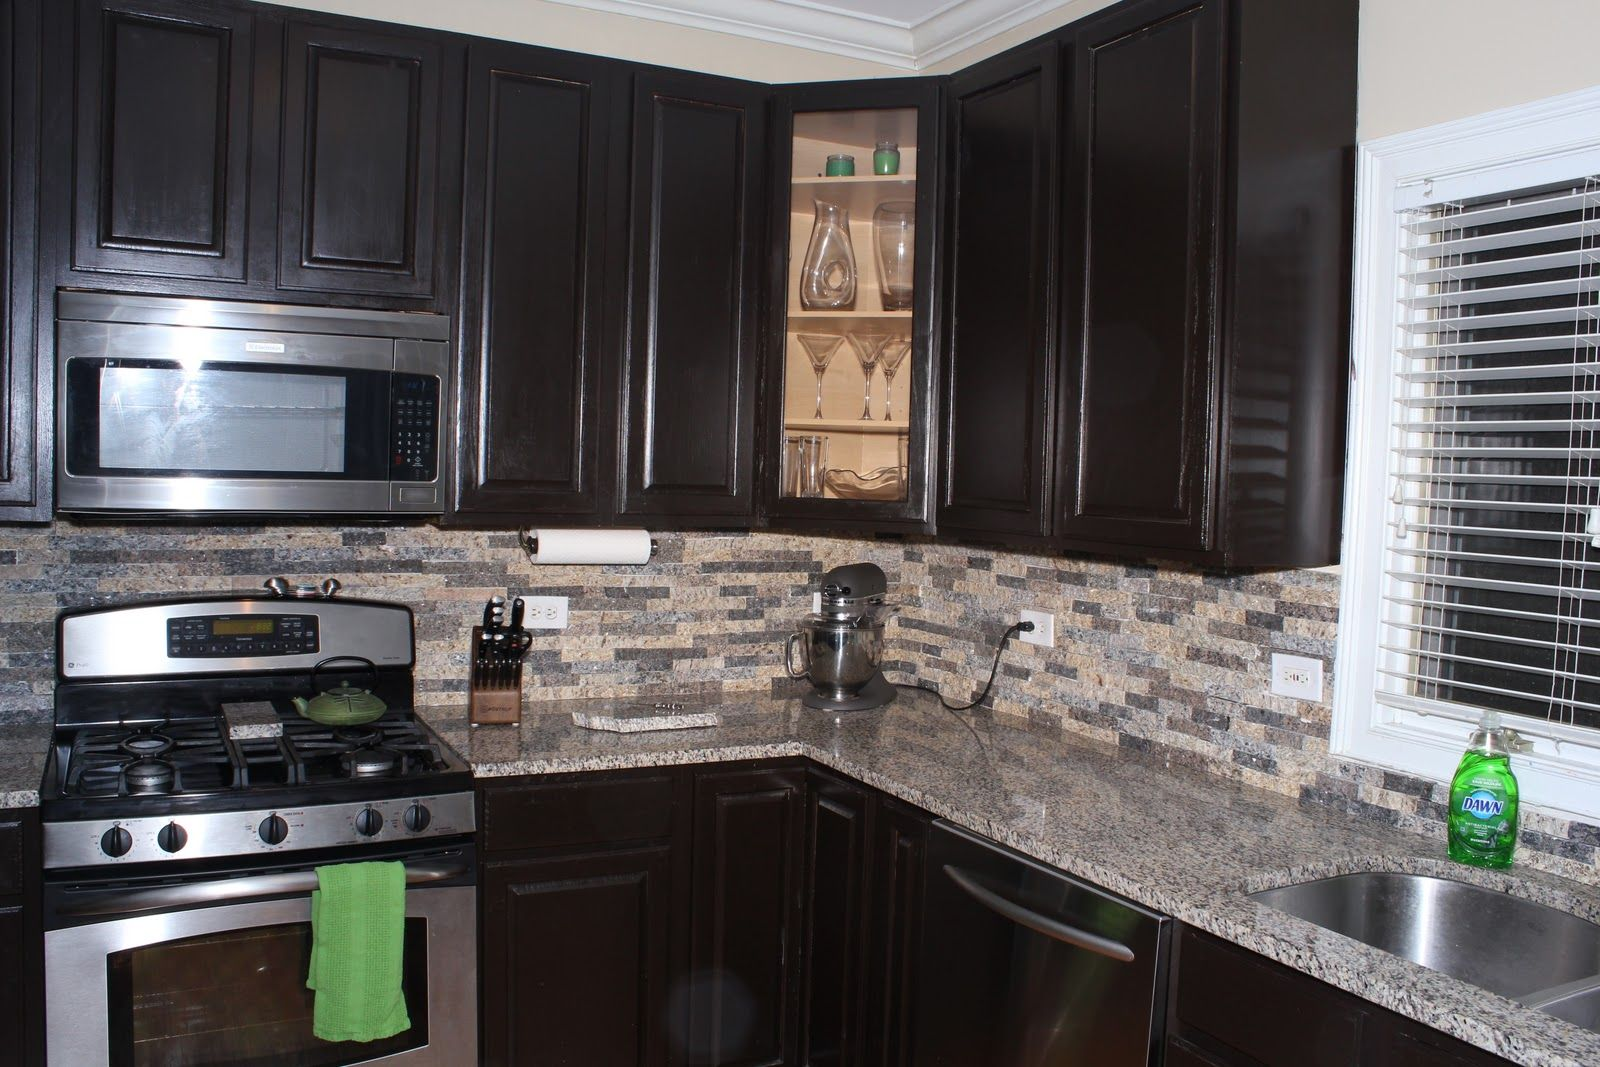 benjamin moore bittersweet chocolate cabinets - Google Search | To ...